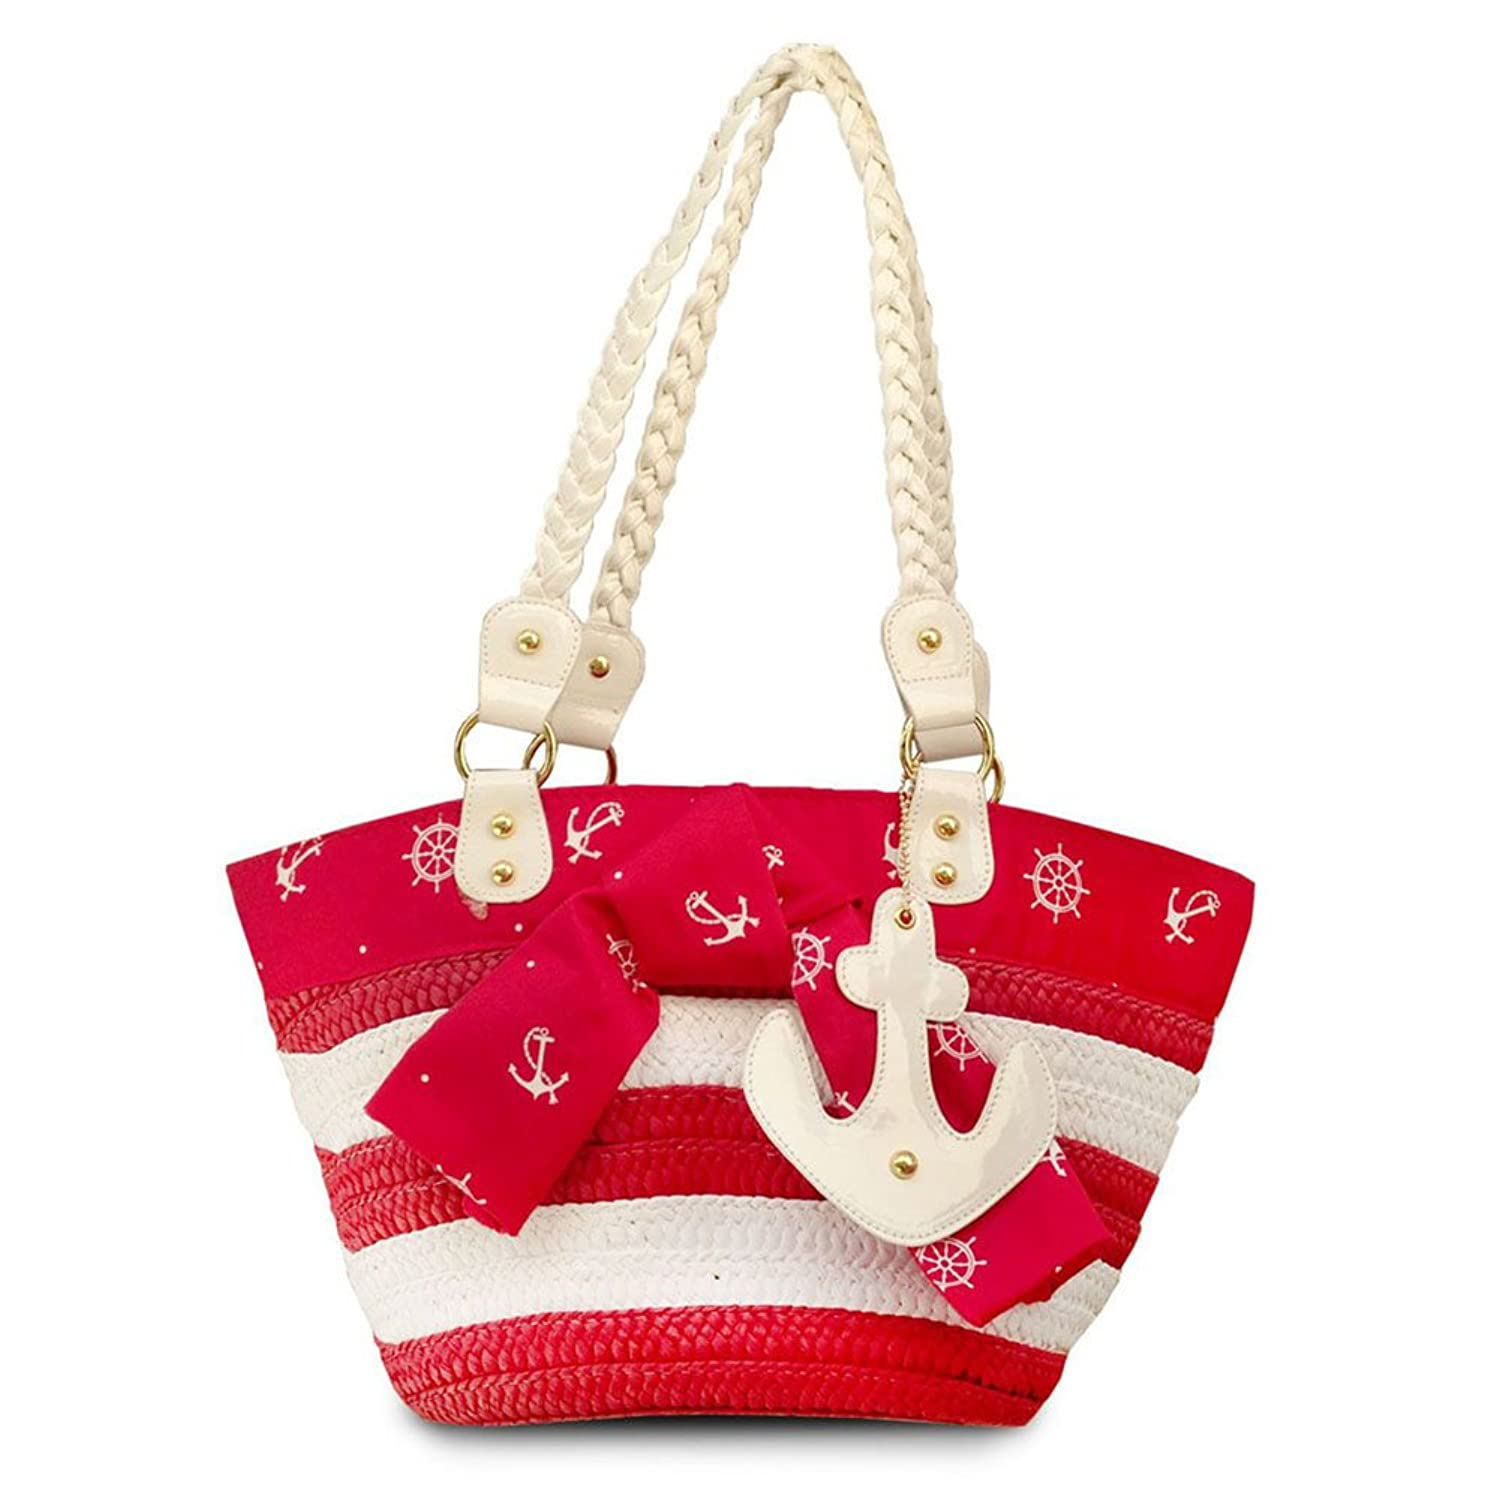 Retro Handbags, Purses, Wallets, Bags Red Rockabilly Voodoo Vixen Anchors Away Wicker Tote Bag Purse $44.99 AT vintagedancer.com